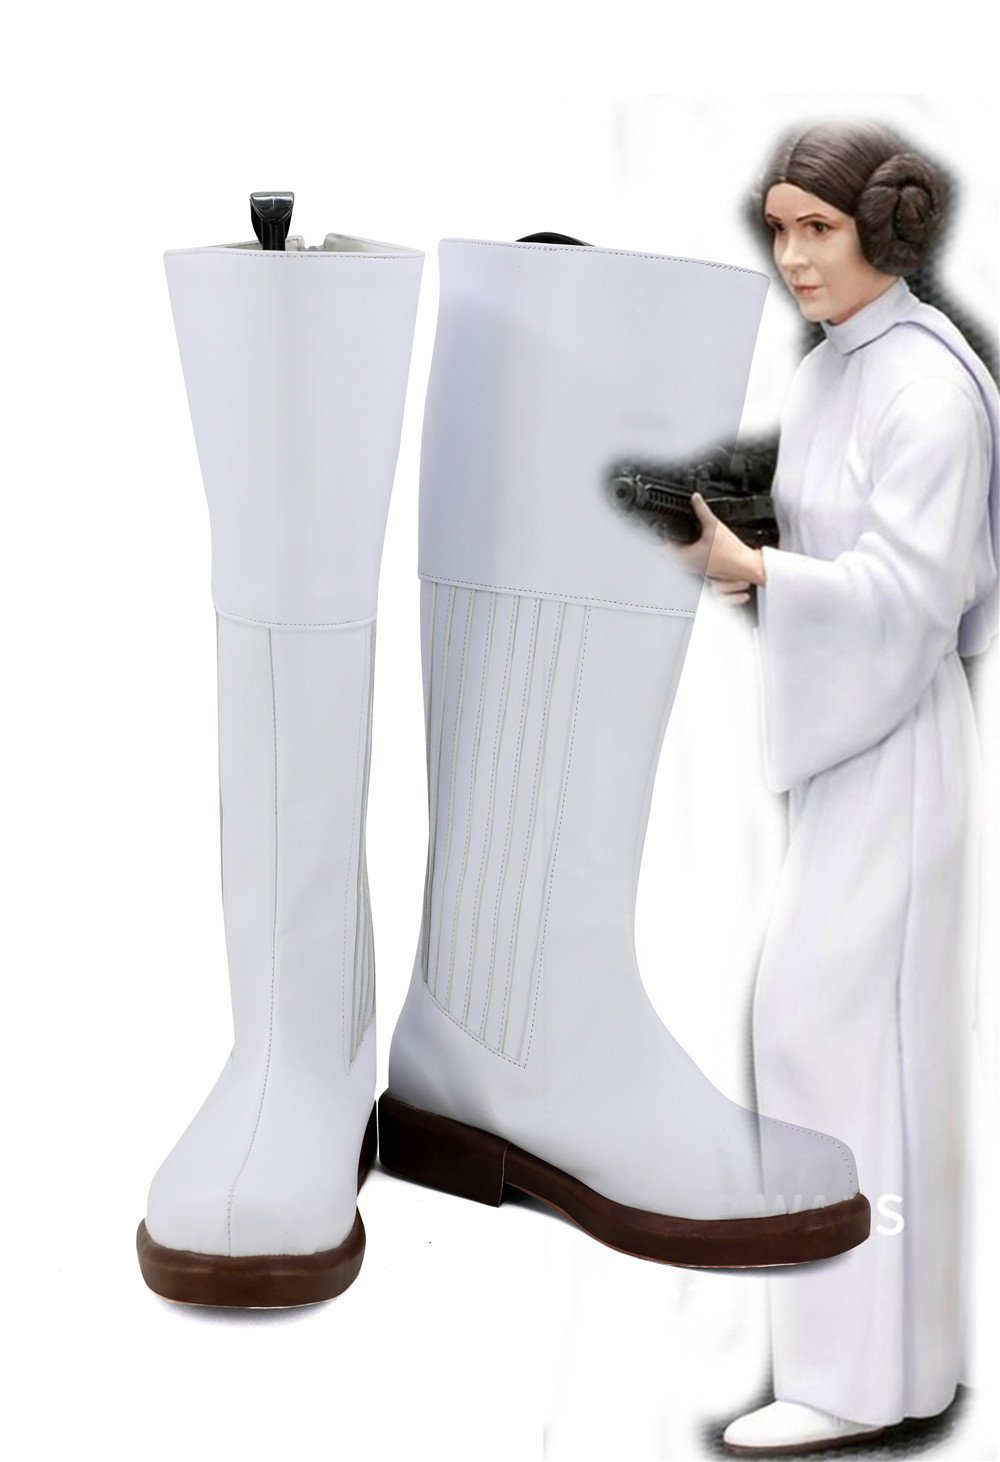 Star Wars Pricess Leia Cosplay Shoes Boots White